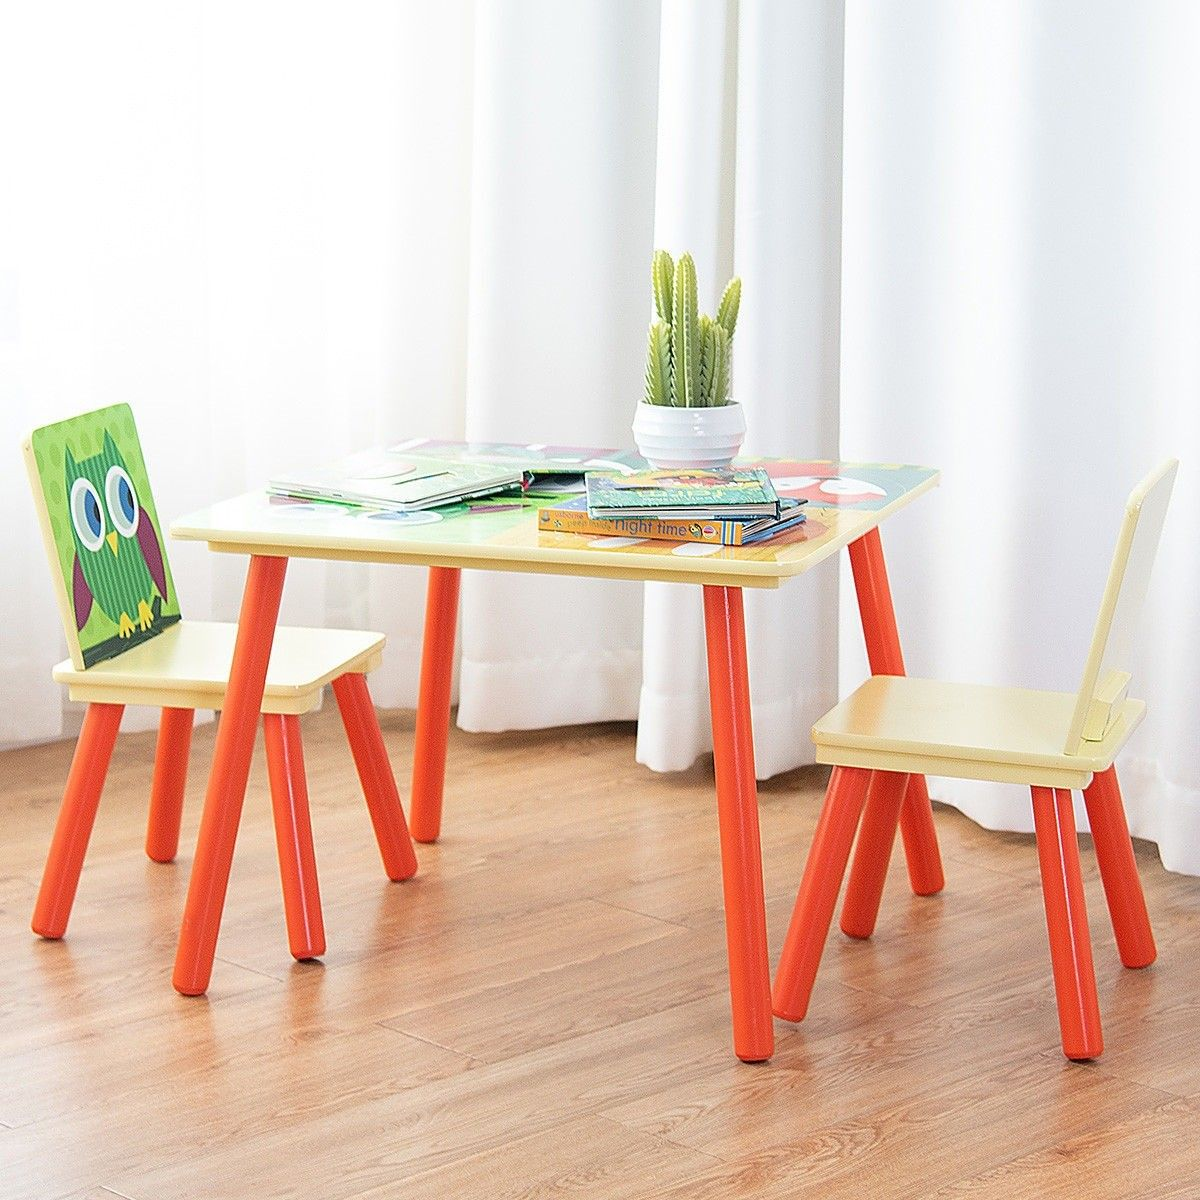 Kids Table And 2 Chairs Set Desk W Cartoon Pattern Kids Table Set Kids Chairs Kid Table